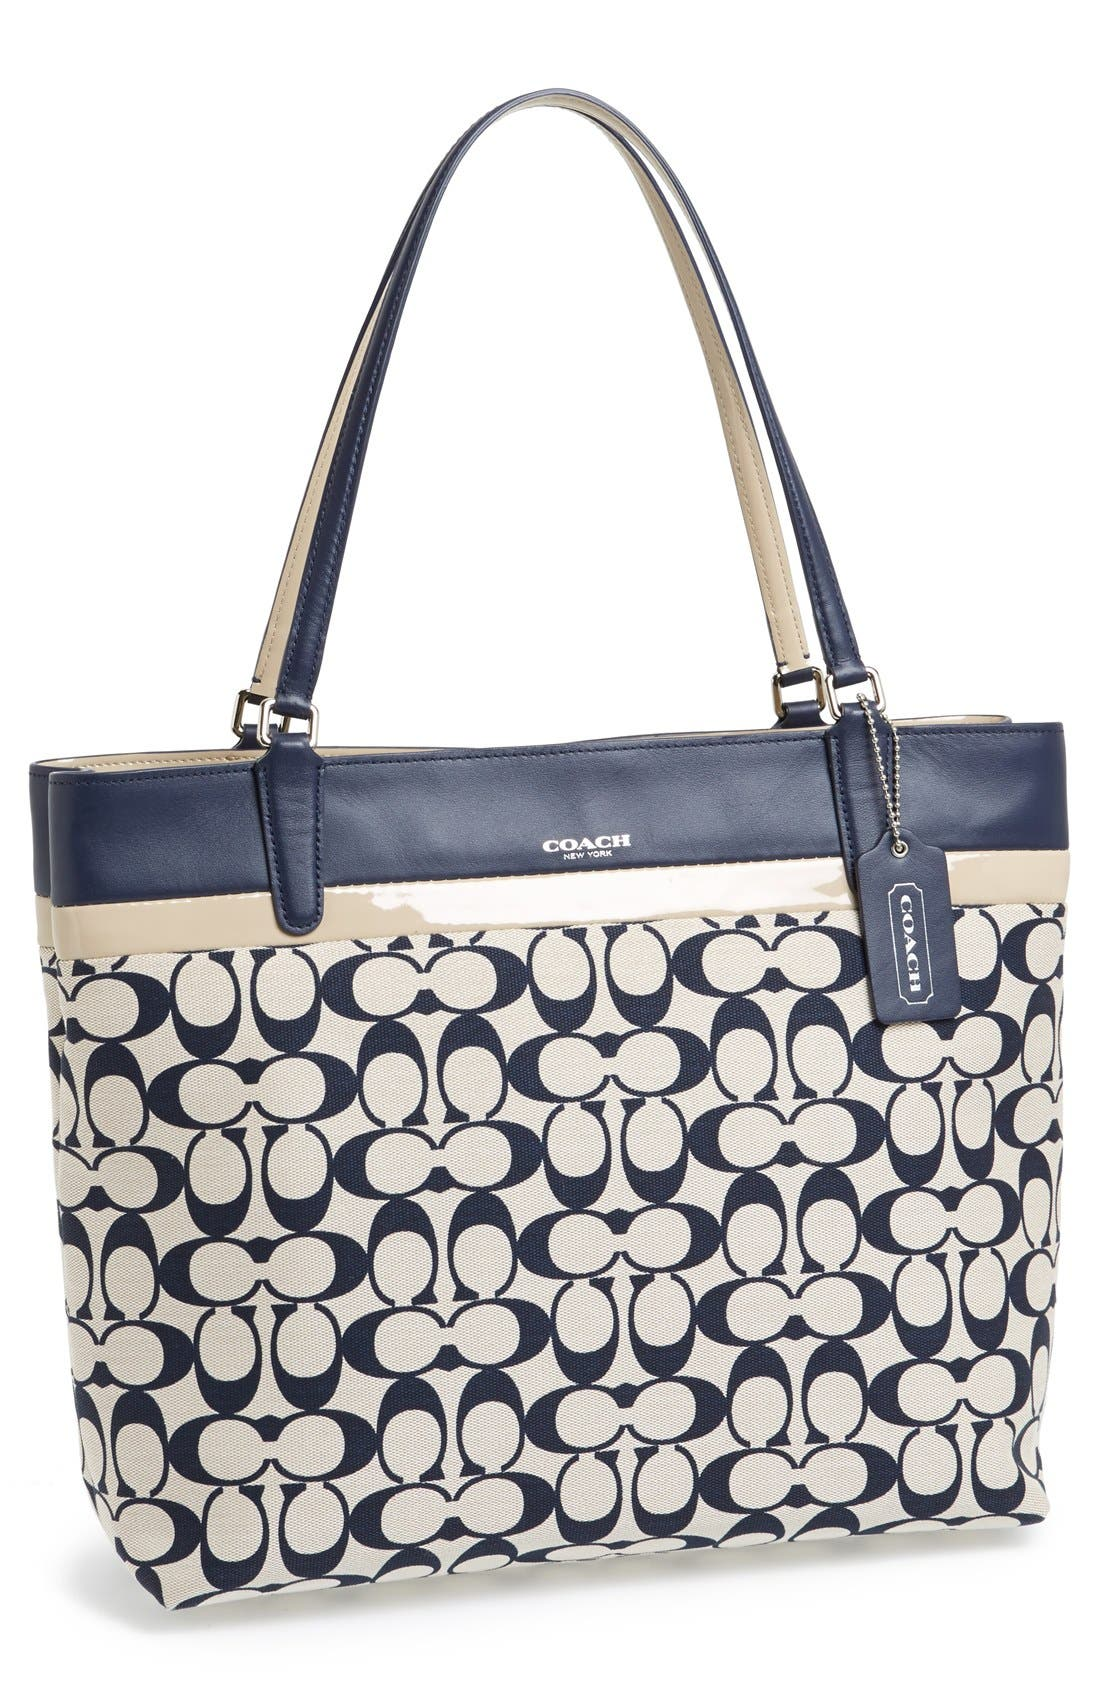 Alternate Image 1 Selected - COACH 'Small Signature' Tote